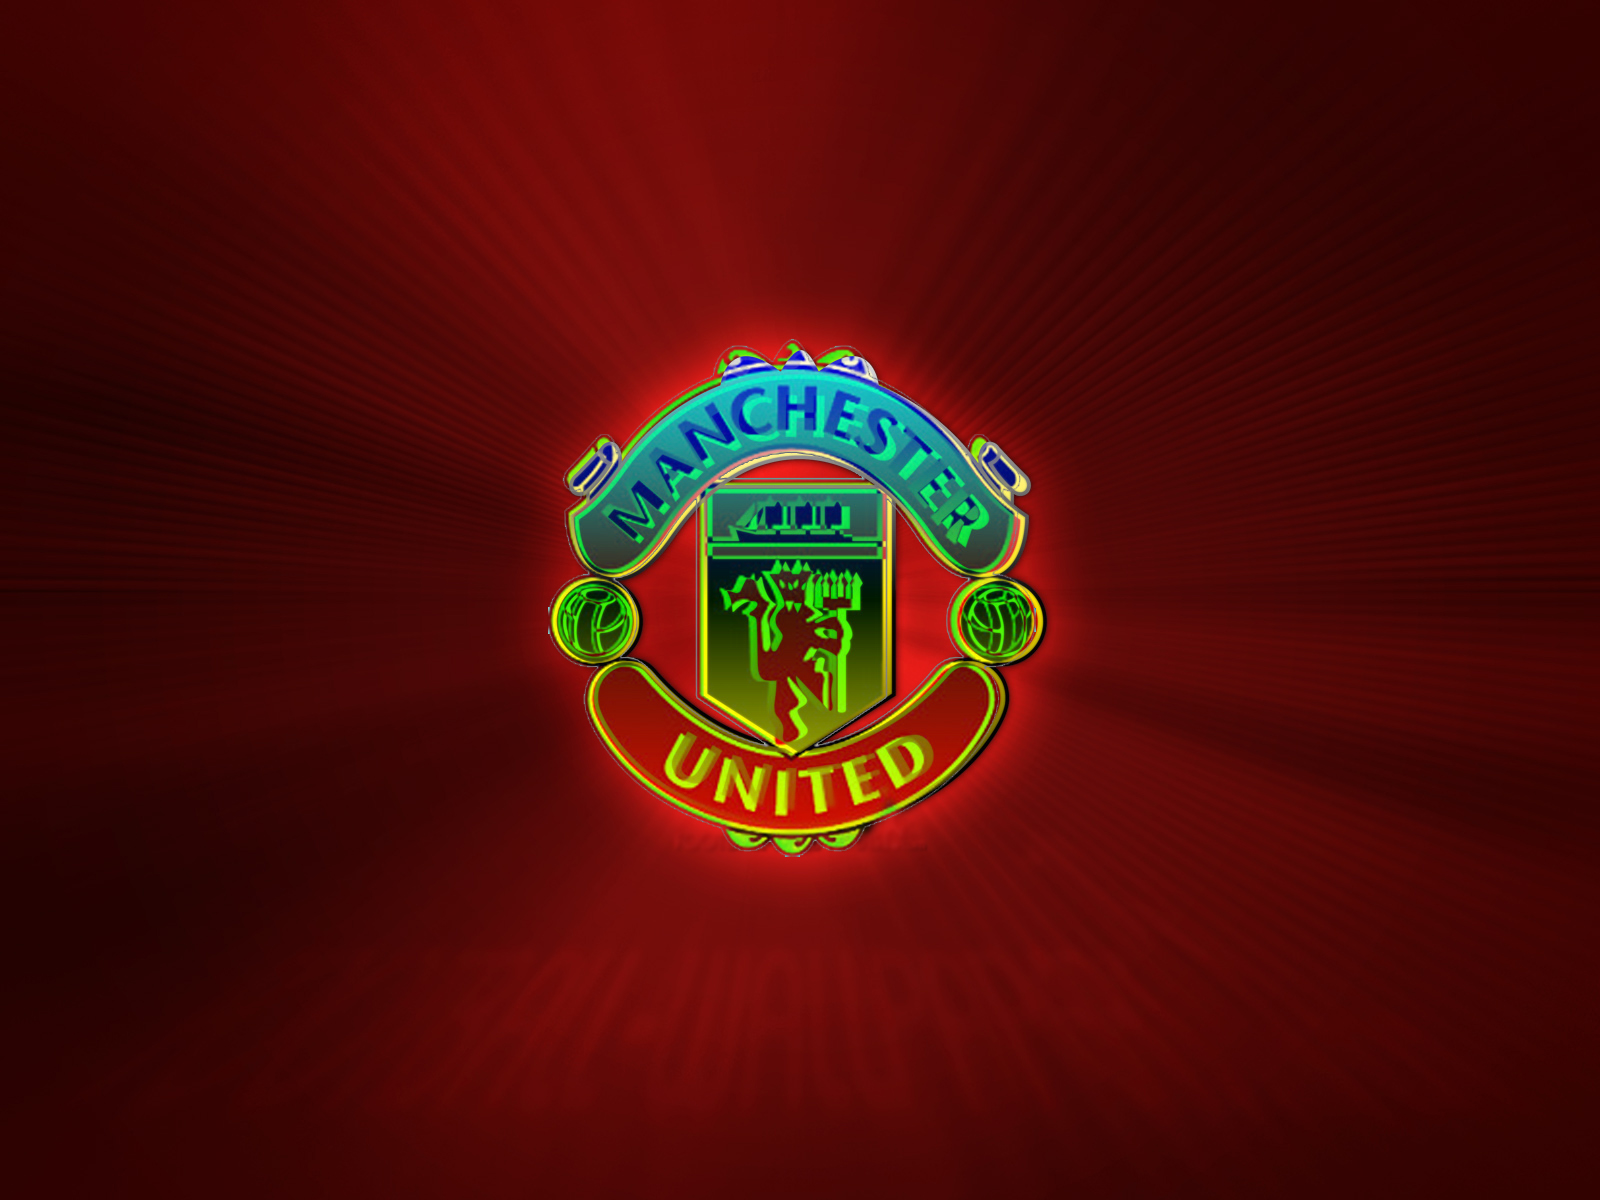 Manchester united logo wallpaper - Cool man united wallpapers ...